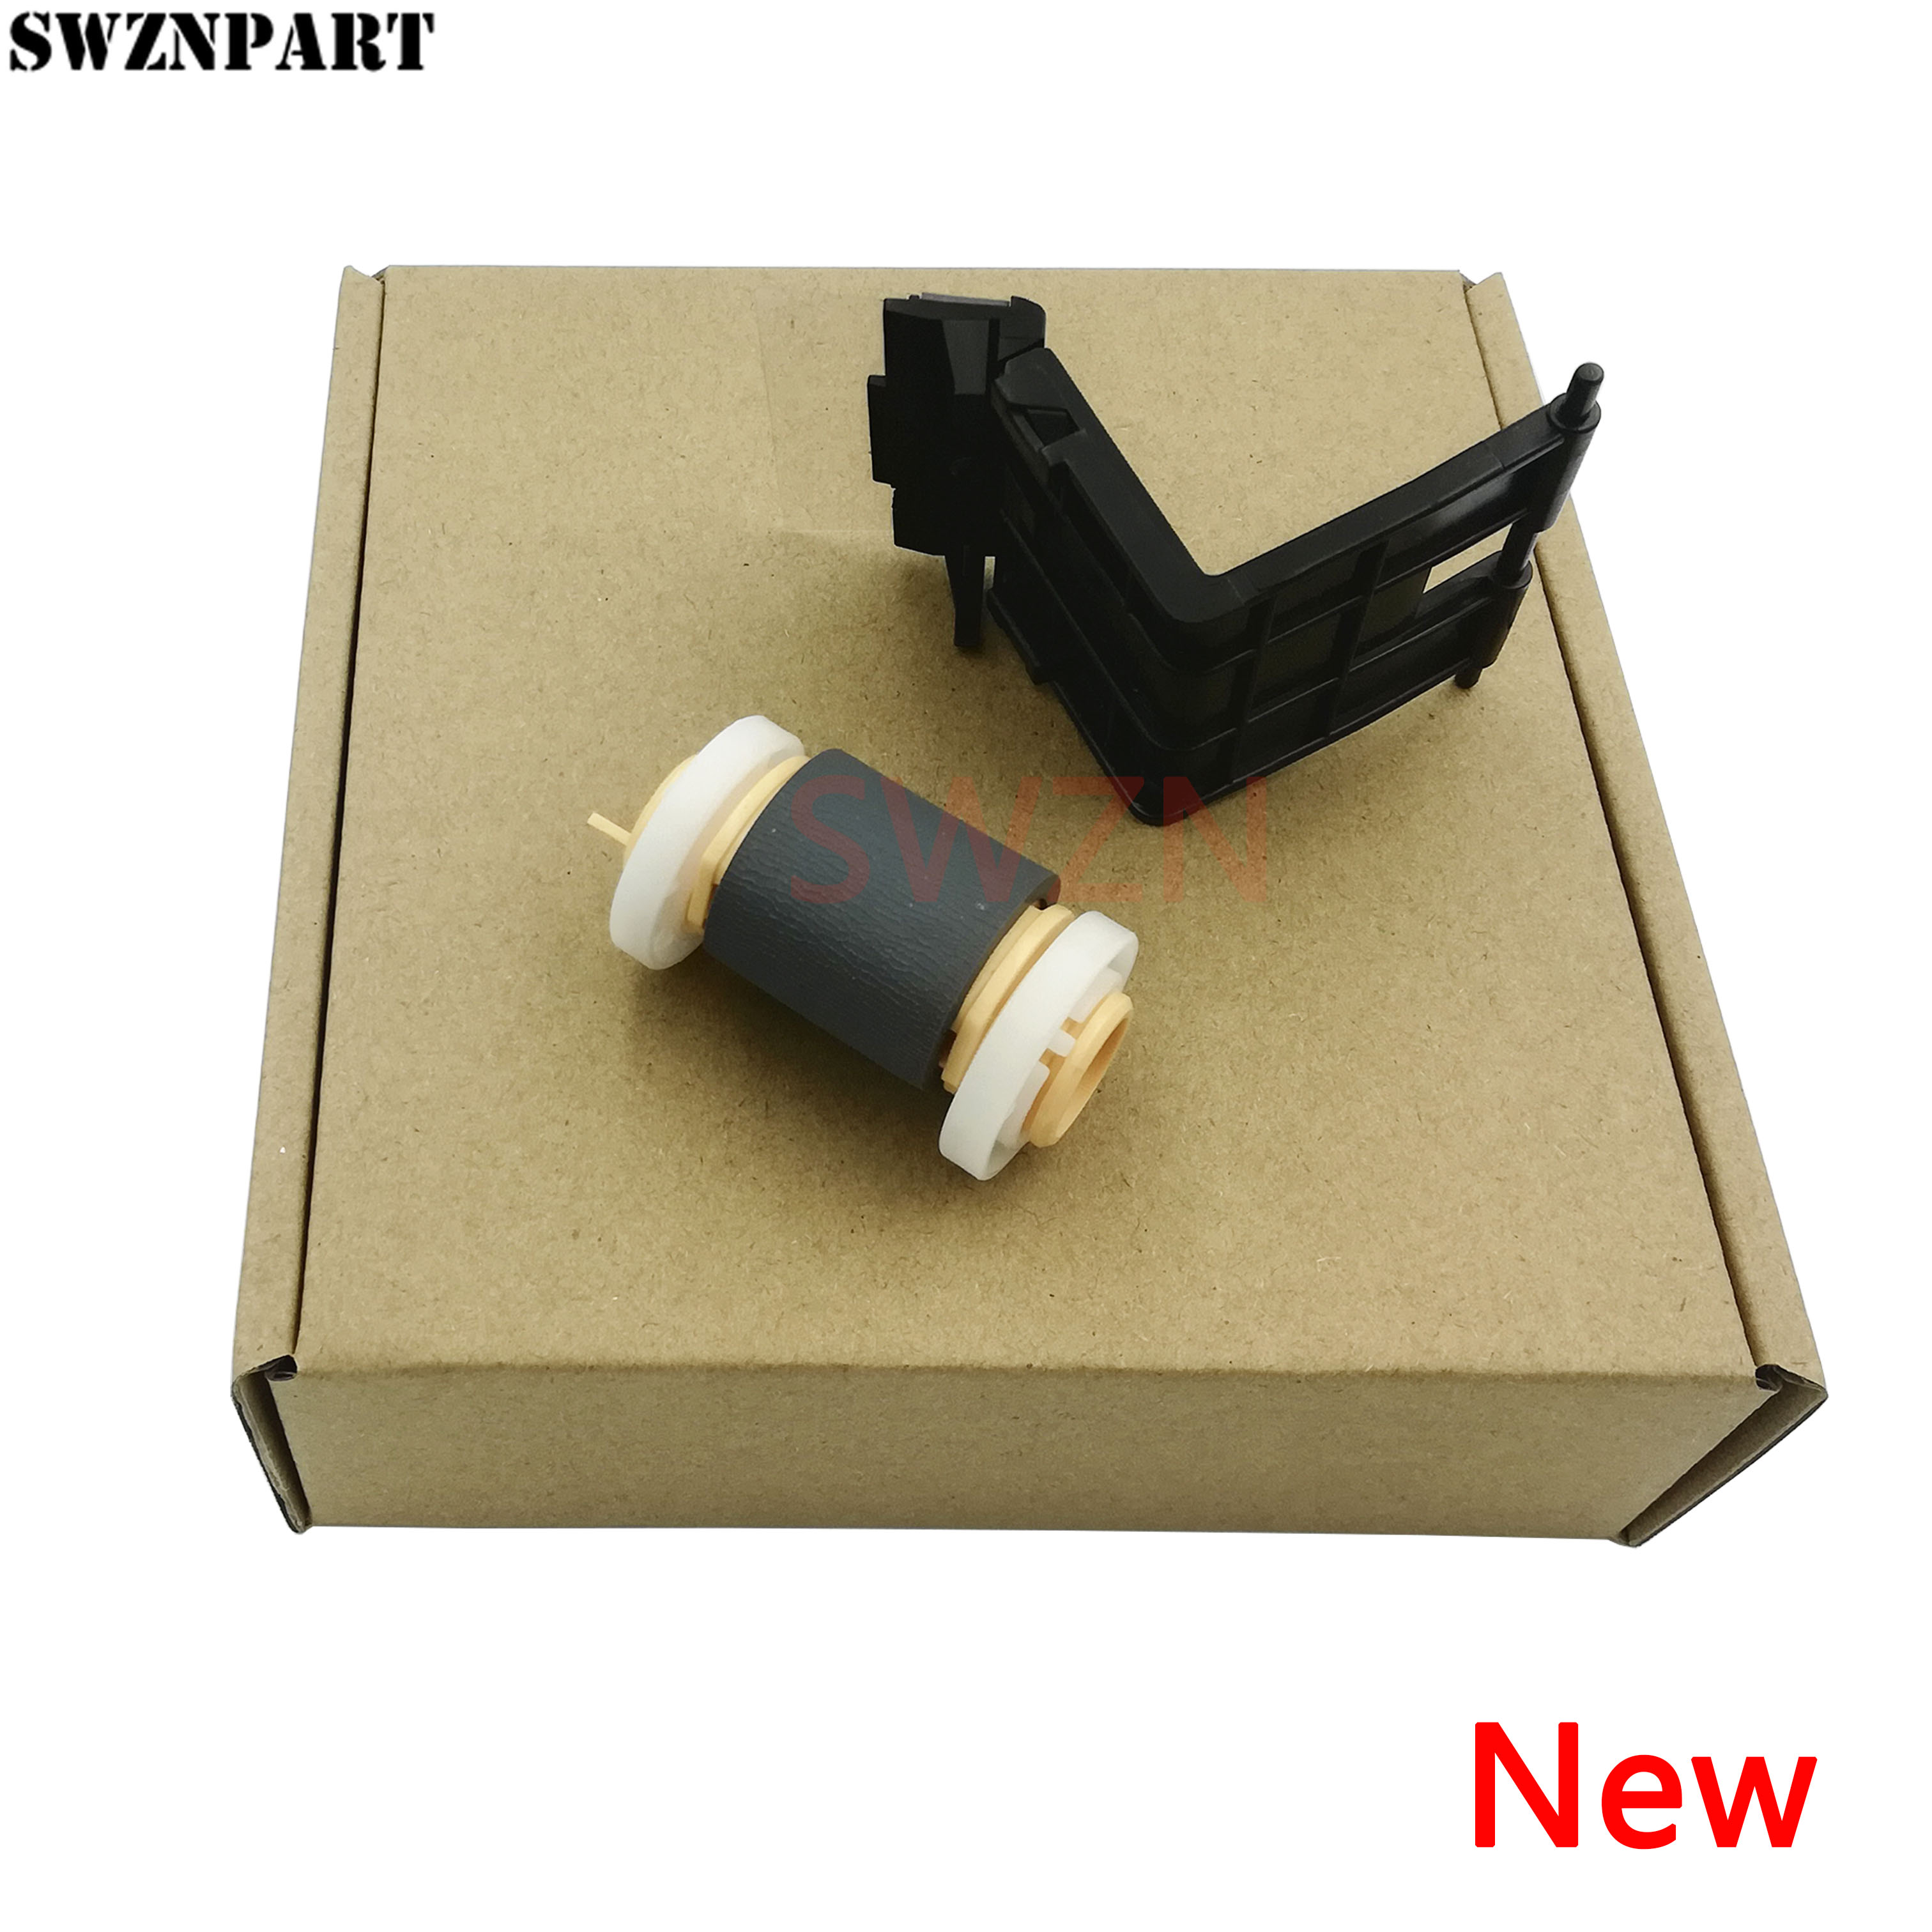 New Tray Pickup Roller & Seperation Pad For Xerox 3435 3428 For Samsung 3470 3471 3051 3050 JC73-00310A